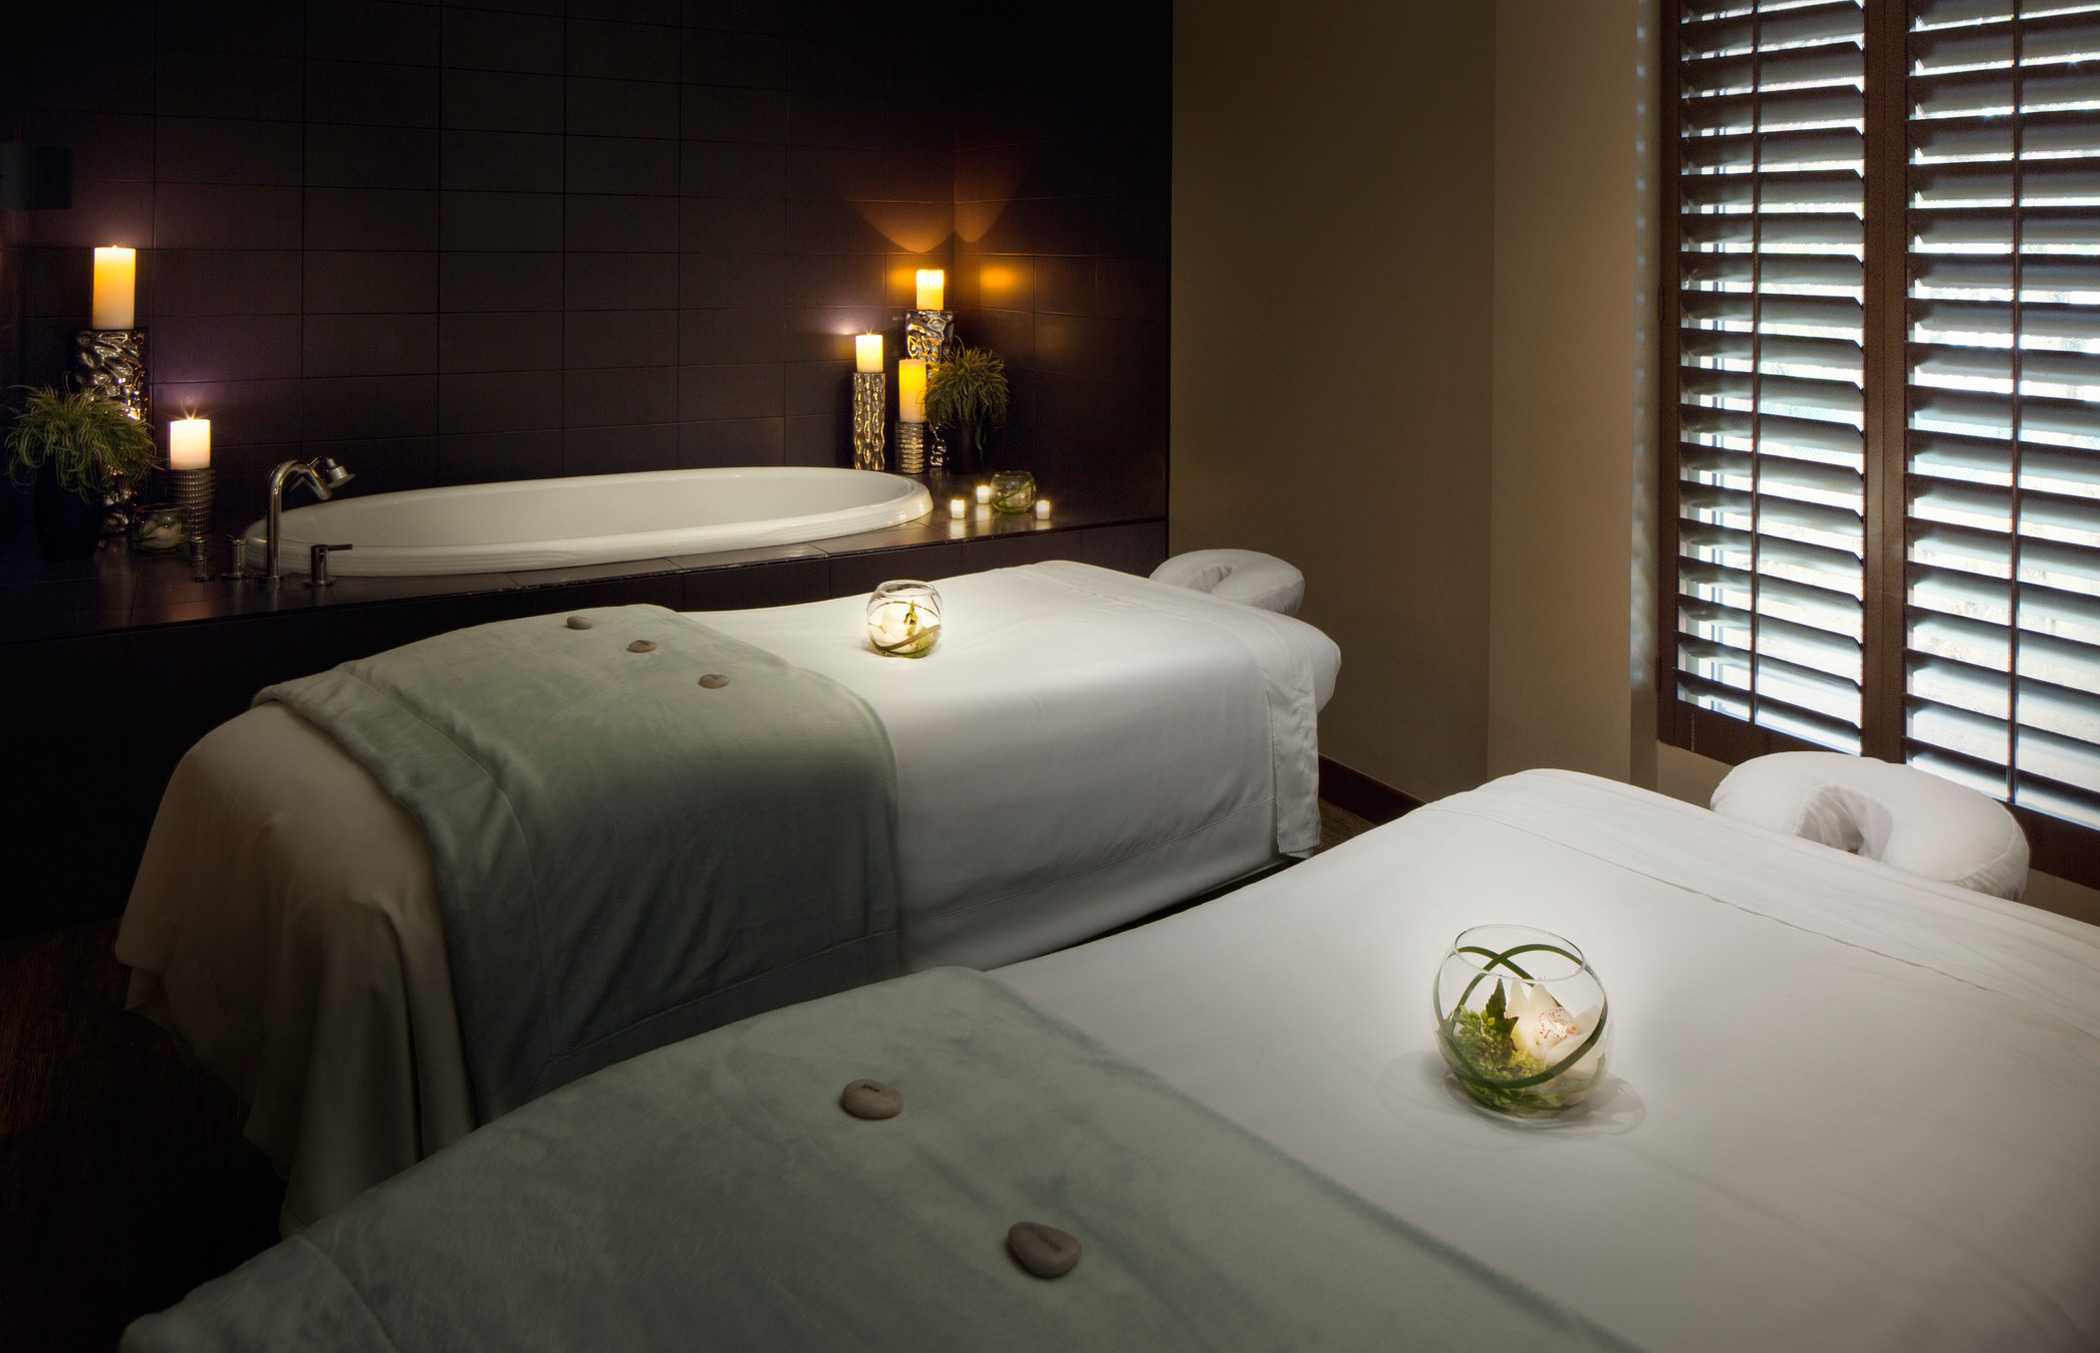 A candlelit room with two prepped massage tables